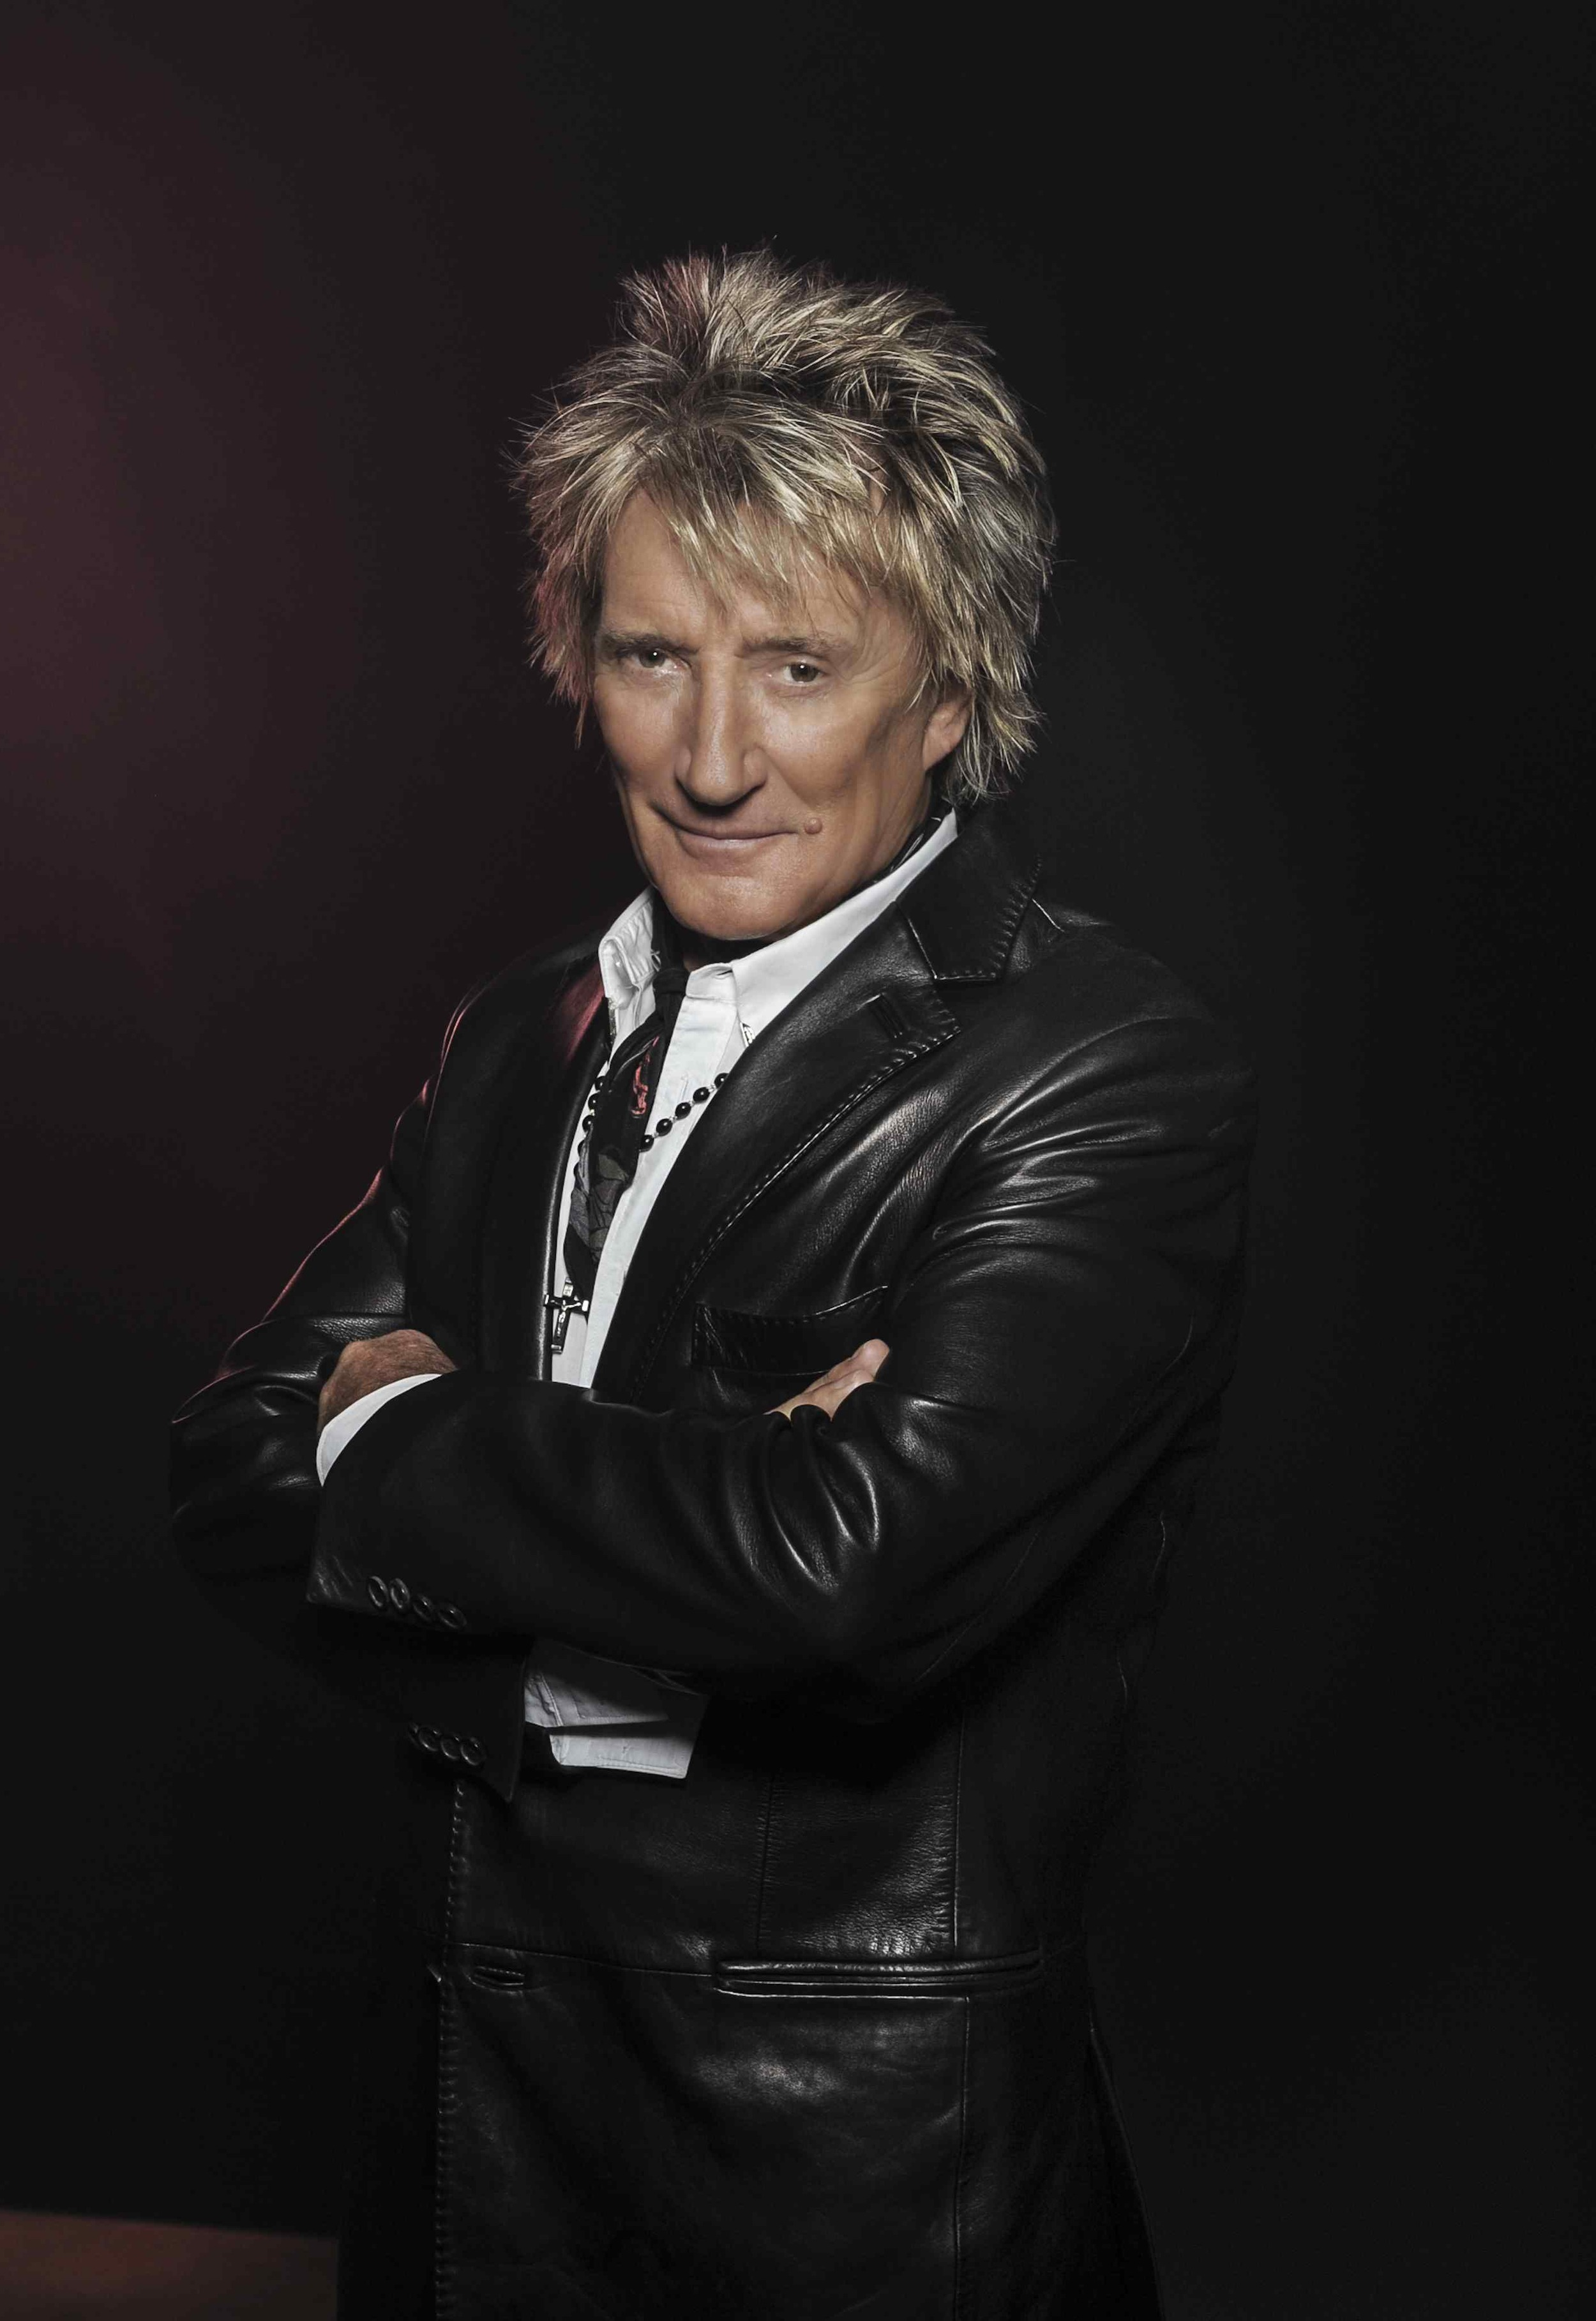 Rod Stewart - Press Shot #3 LR (JPG)